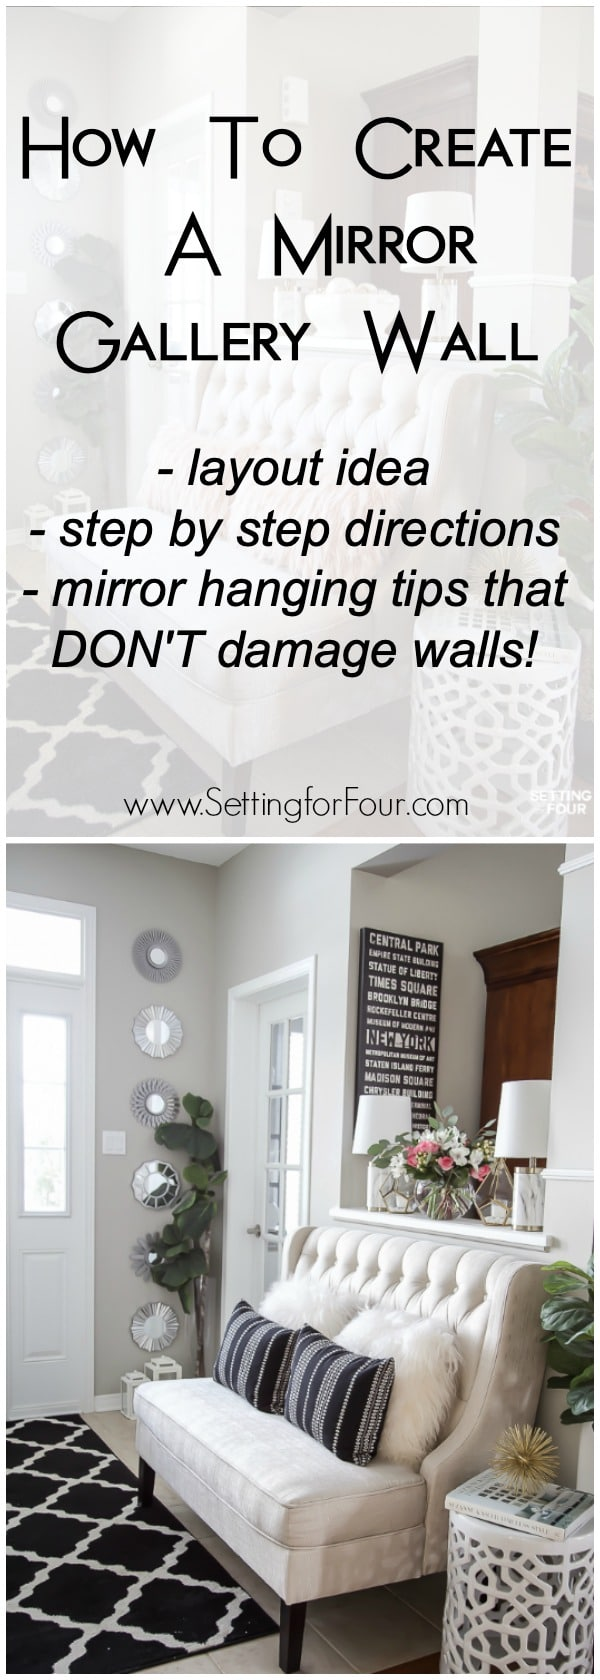 How to create a beautiful mirror gallery wall! Instructions, layout idea and mirror hanging tips that don't damage walls! #damagefree #nonails #commandstrips #3mcommand #mirrors #gallerywall #decor